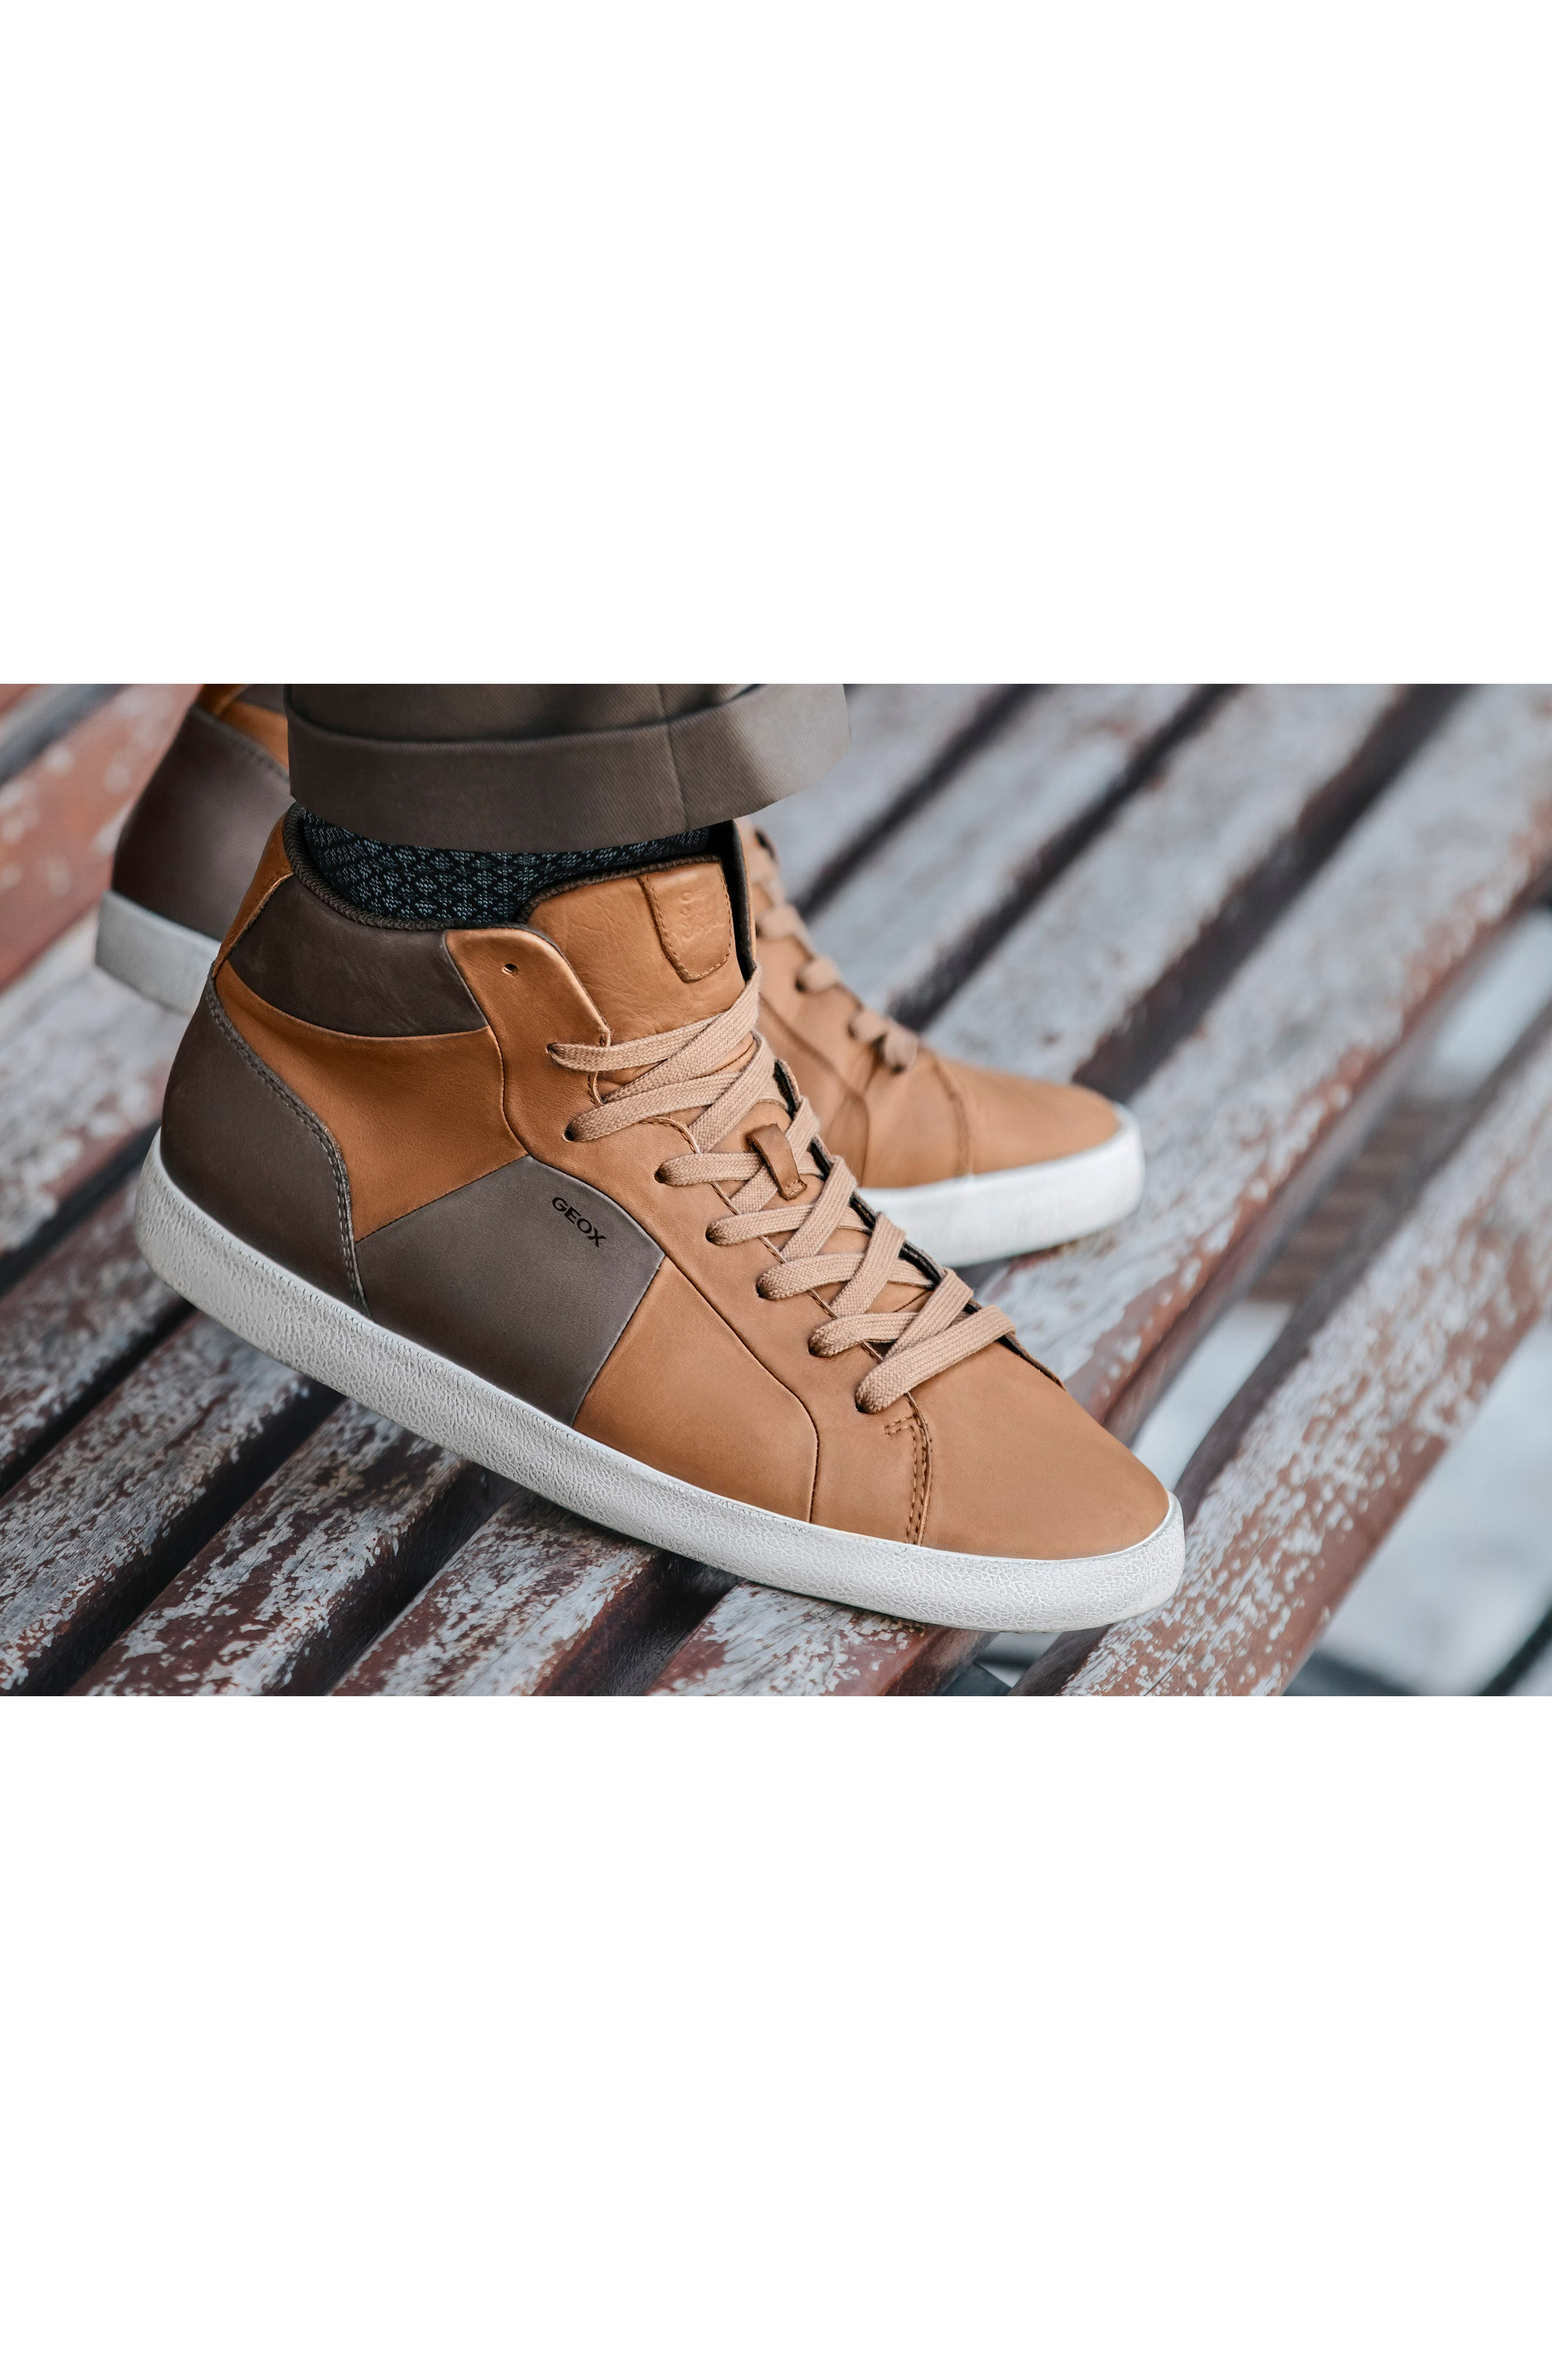 Smart 84 High Top Sneaker,                             Alternate thumbnail 7, color,                             COGNAC/ COFFEE LEATHER